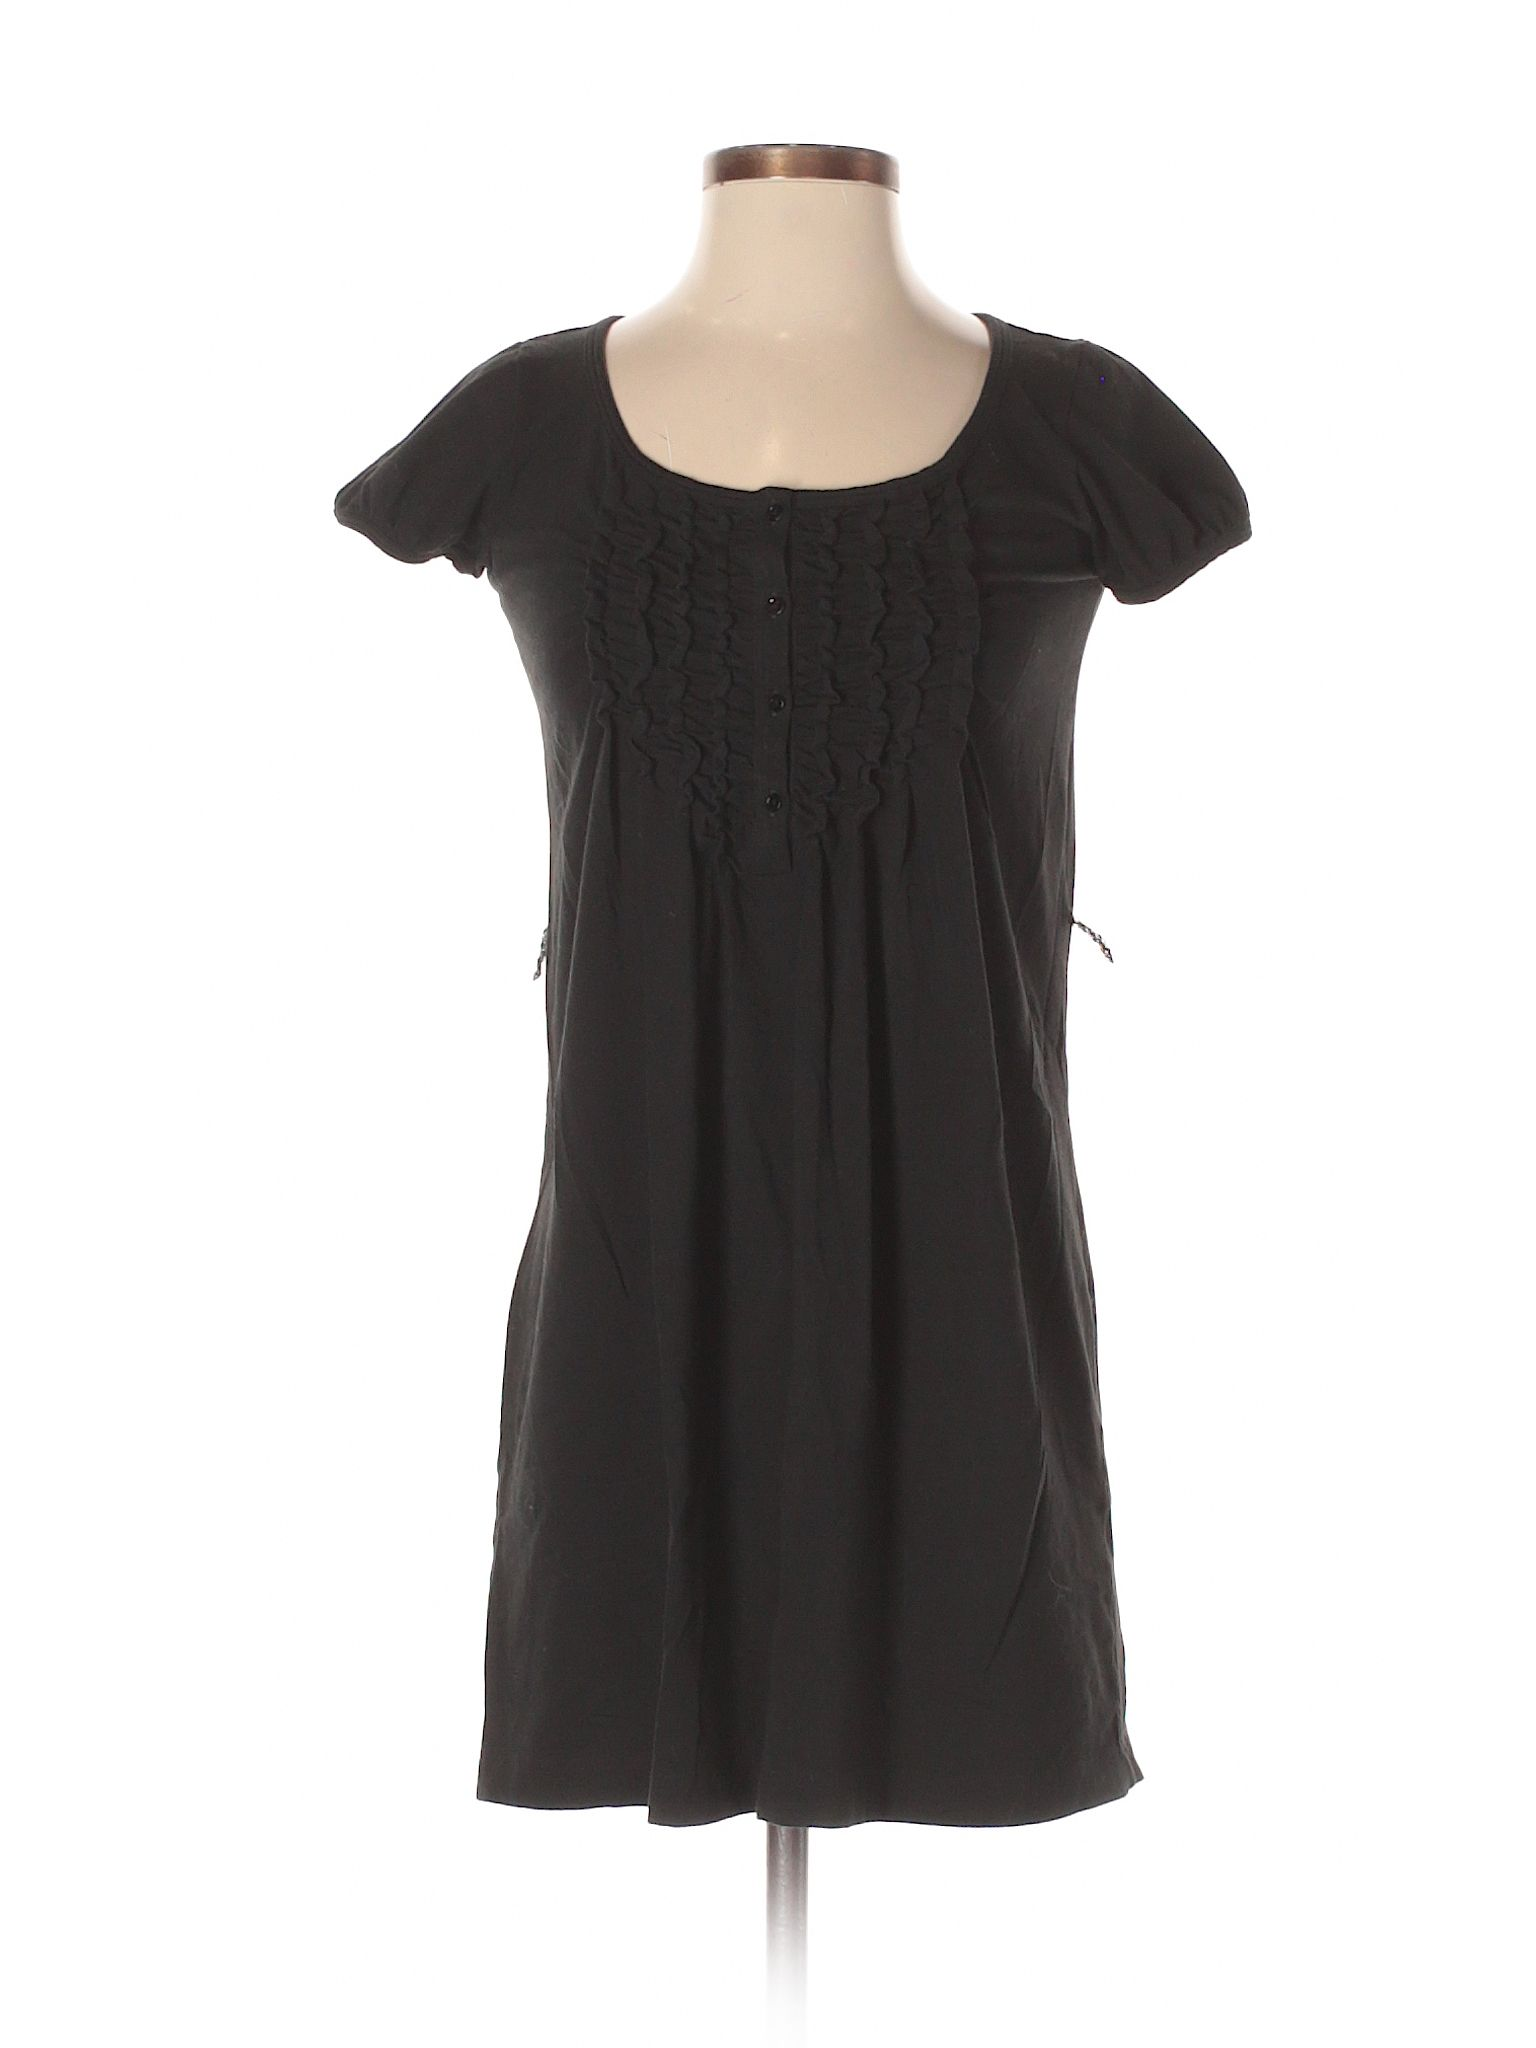 Theory Casual Dress Size 000 Black Womens Dresses  $2299